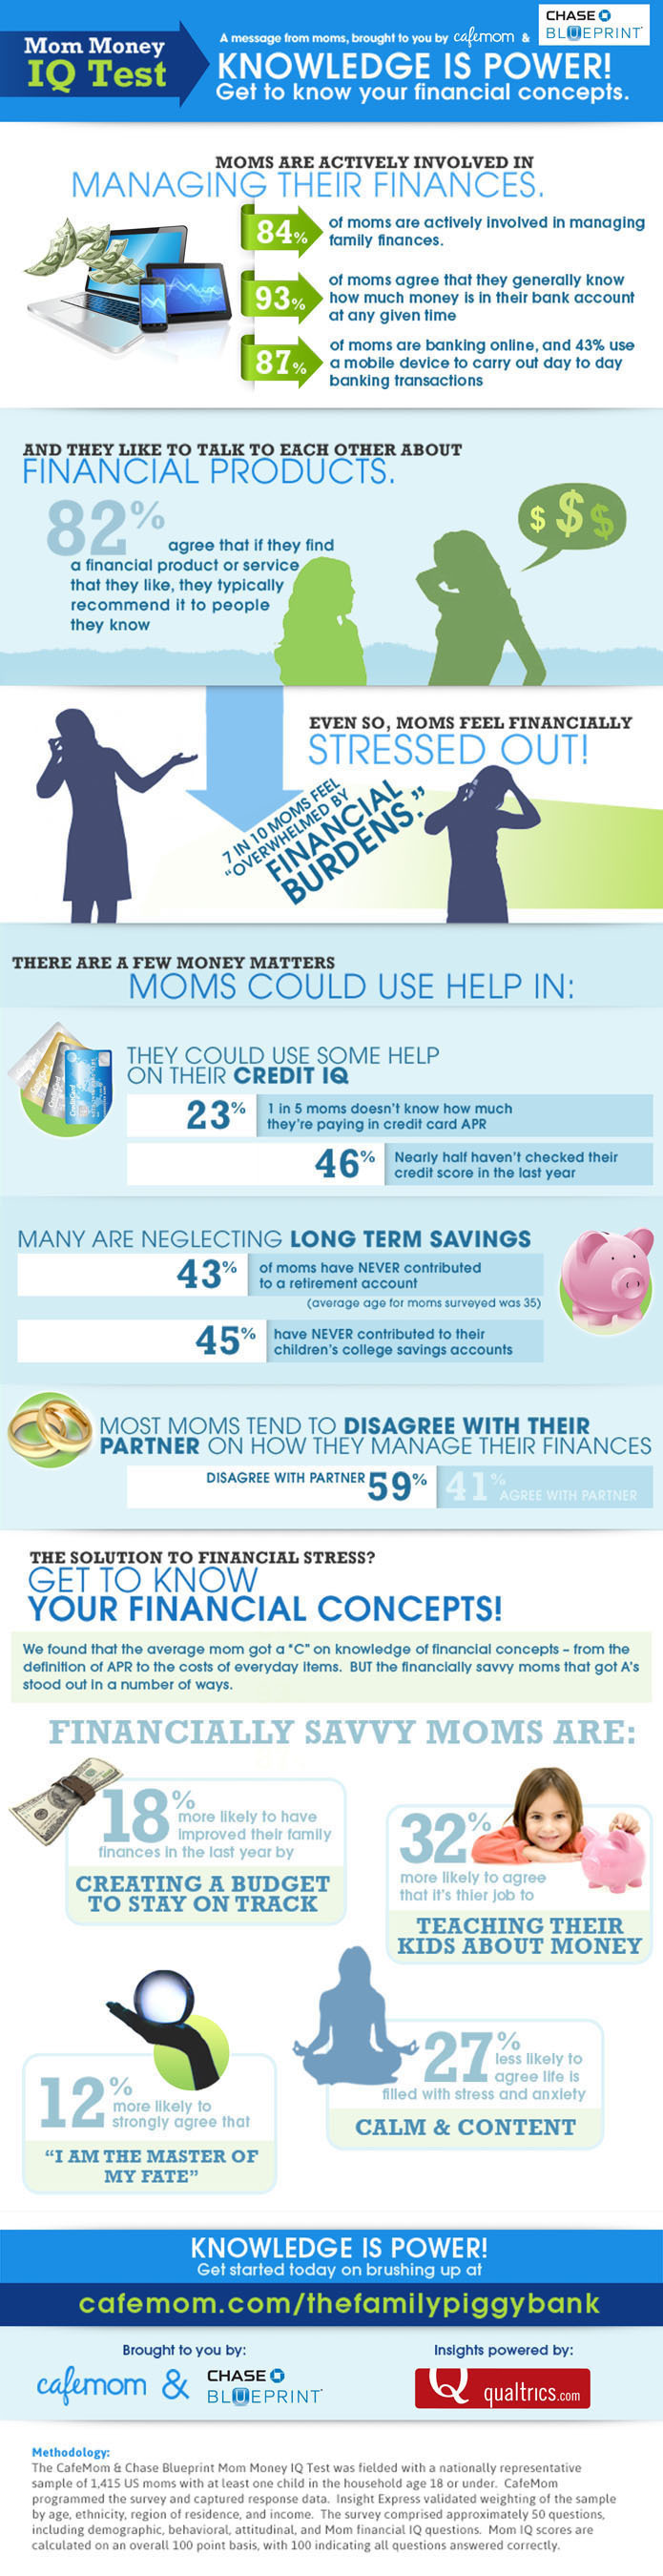 CafeMom And Chase Blueprint Survey Moms' Financial Behaviors And Attitudes